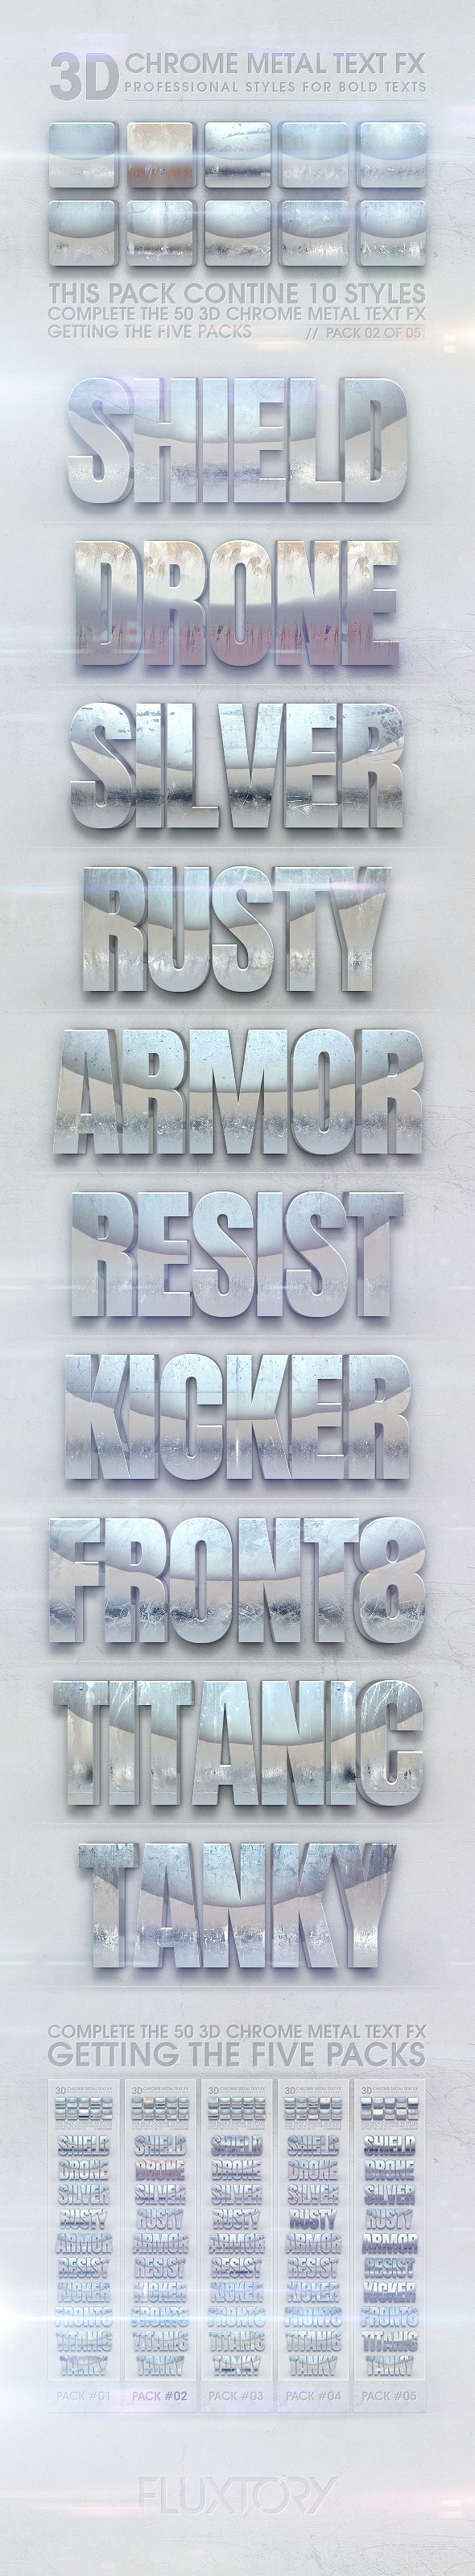 3D Chrome Metal Text FX 02 of 05 - Text Effects Styles